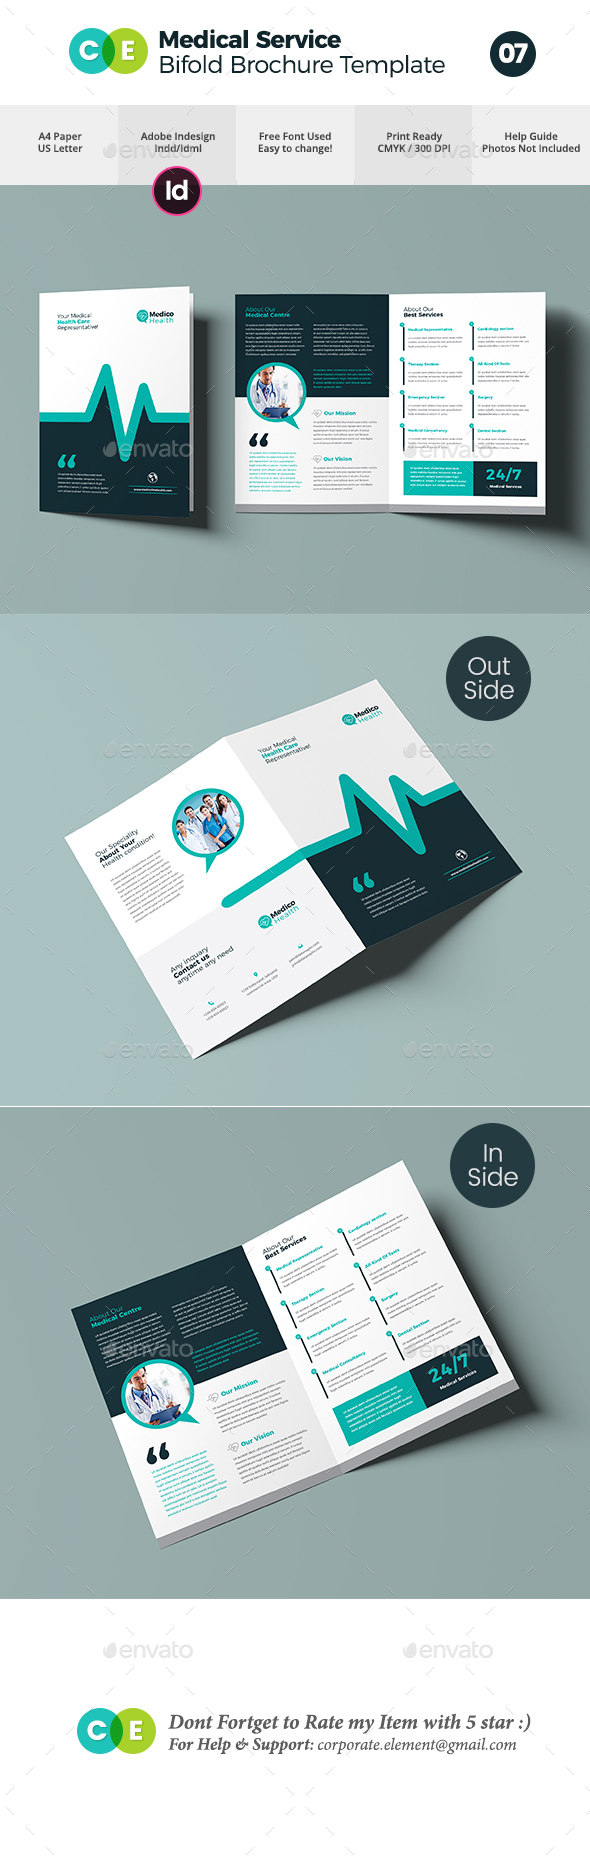 GraphicRiver Medical Service Bifold Brochure Template V07 21180589